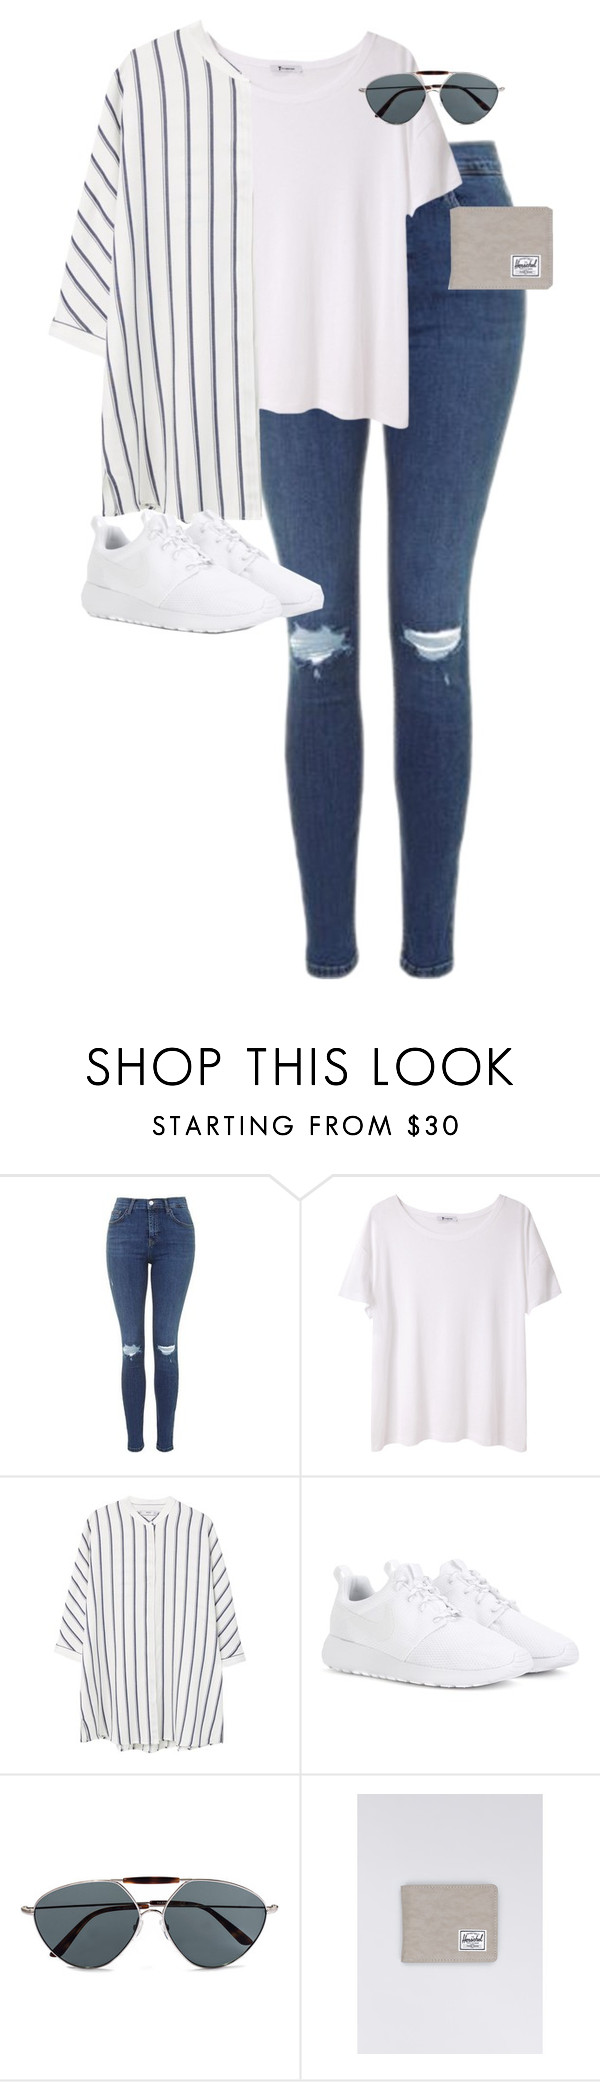 """Untitled #12517"" by alexsrogers ❤ liked on Polyvore featuring Topshop, T By Alexander Wang, MANGO, NIKE, Valentino and Herschel"